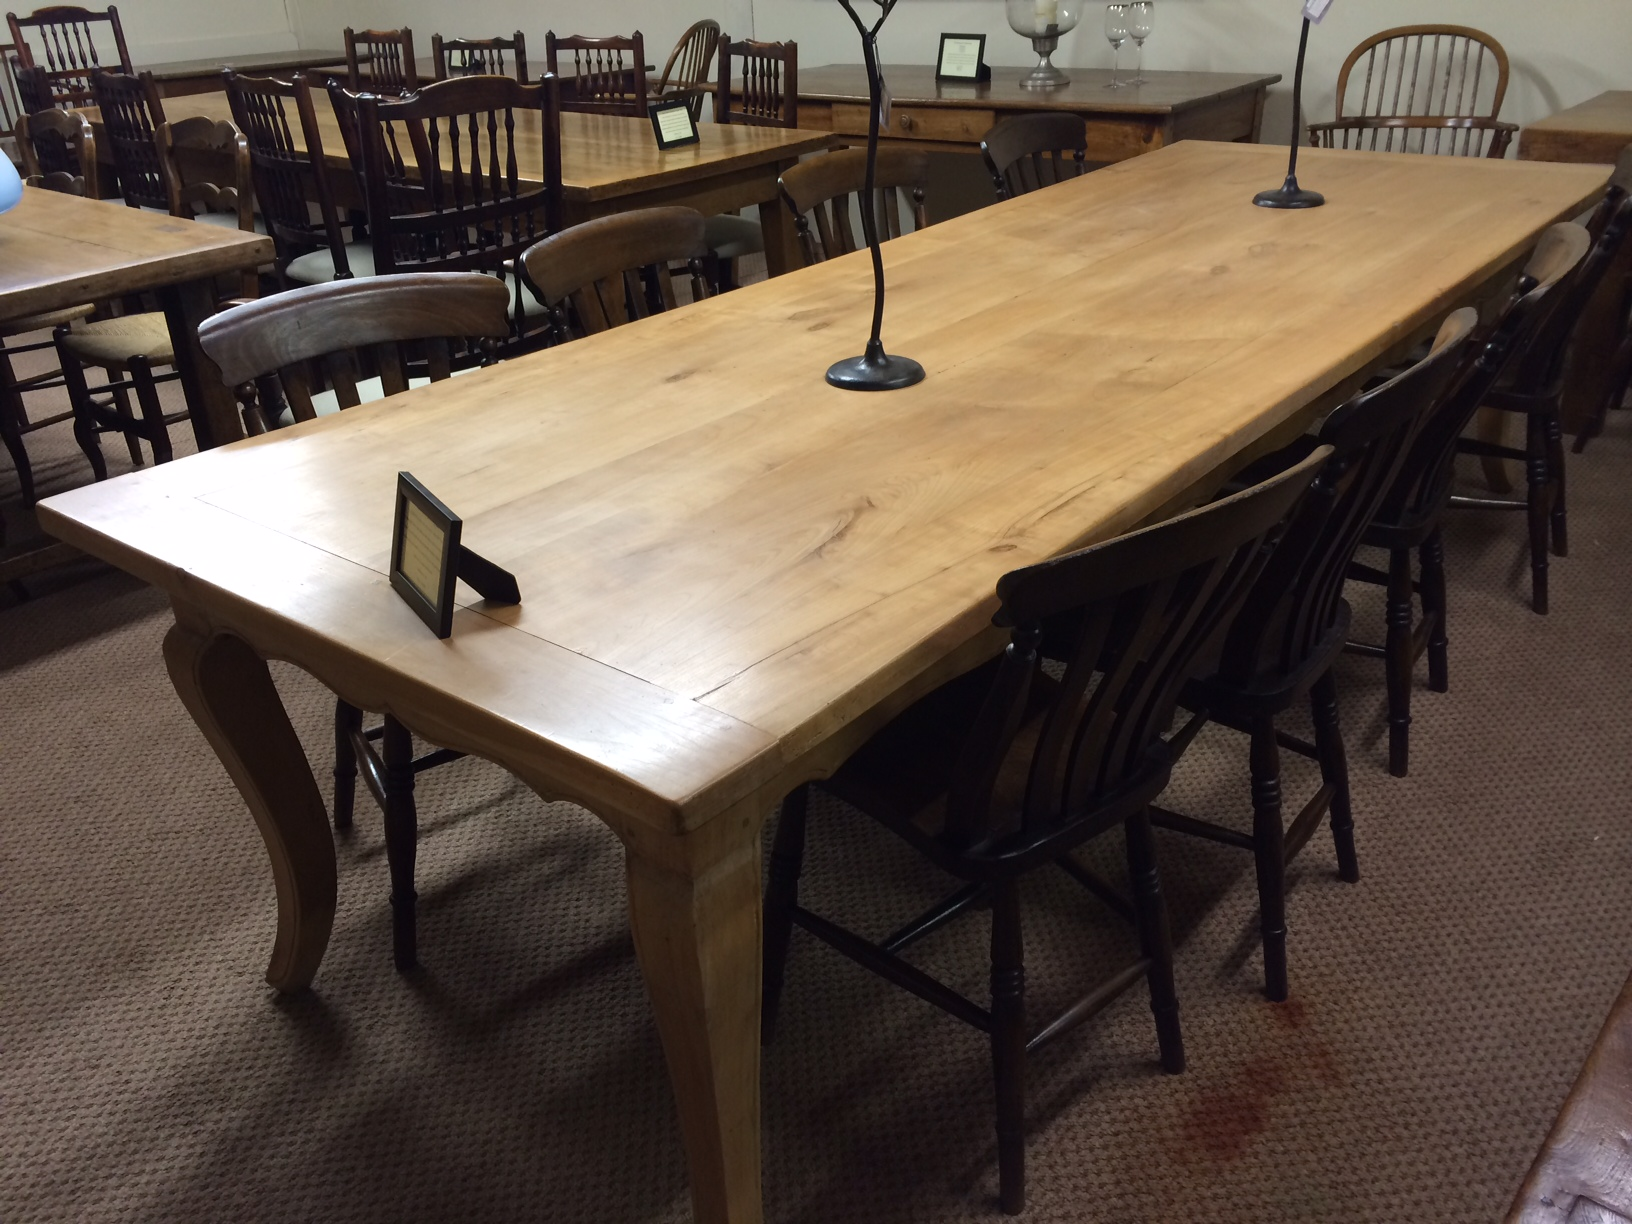 Antique Cherry Cabriole leg table